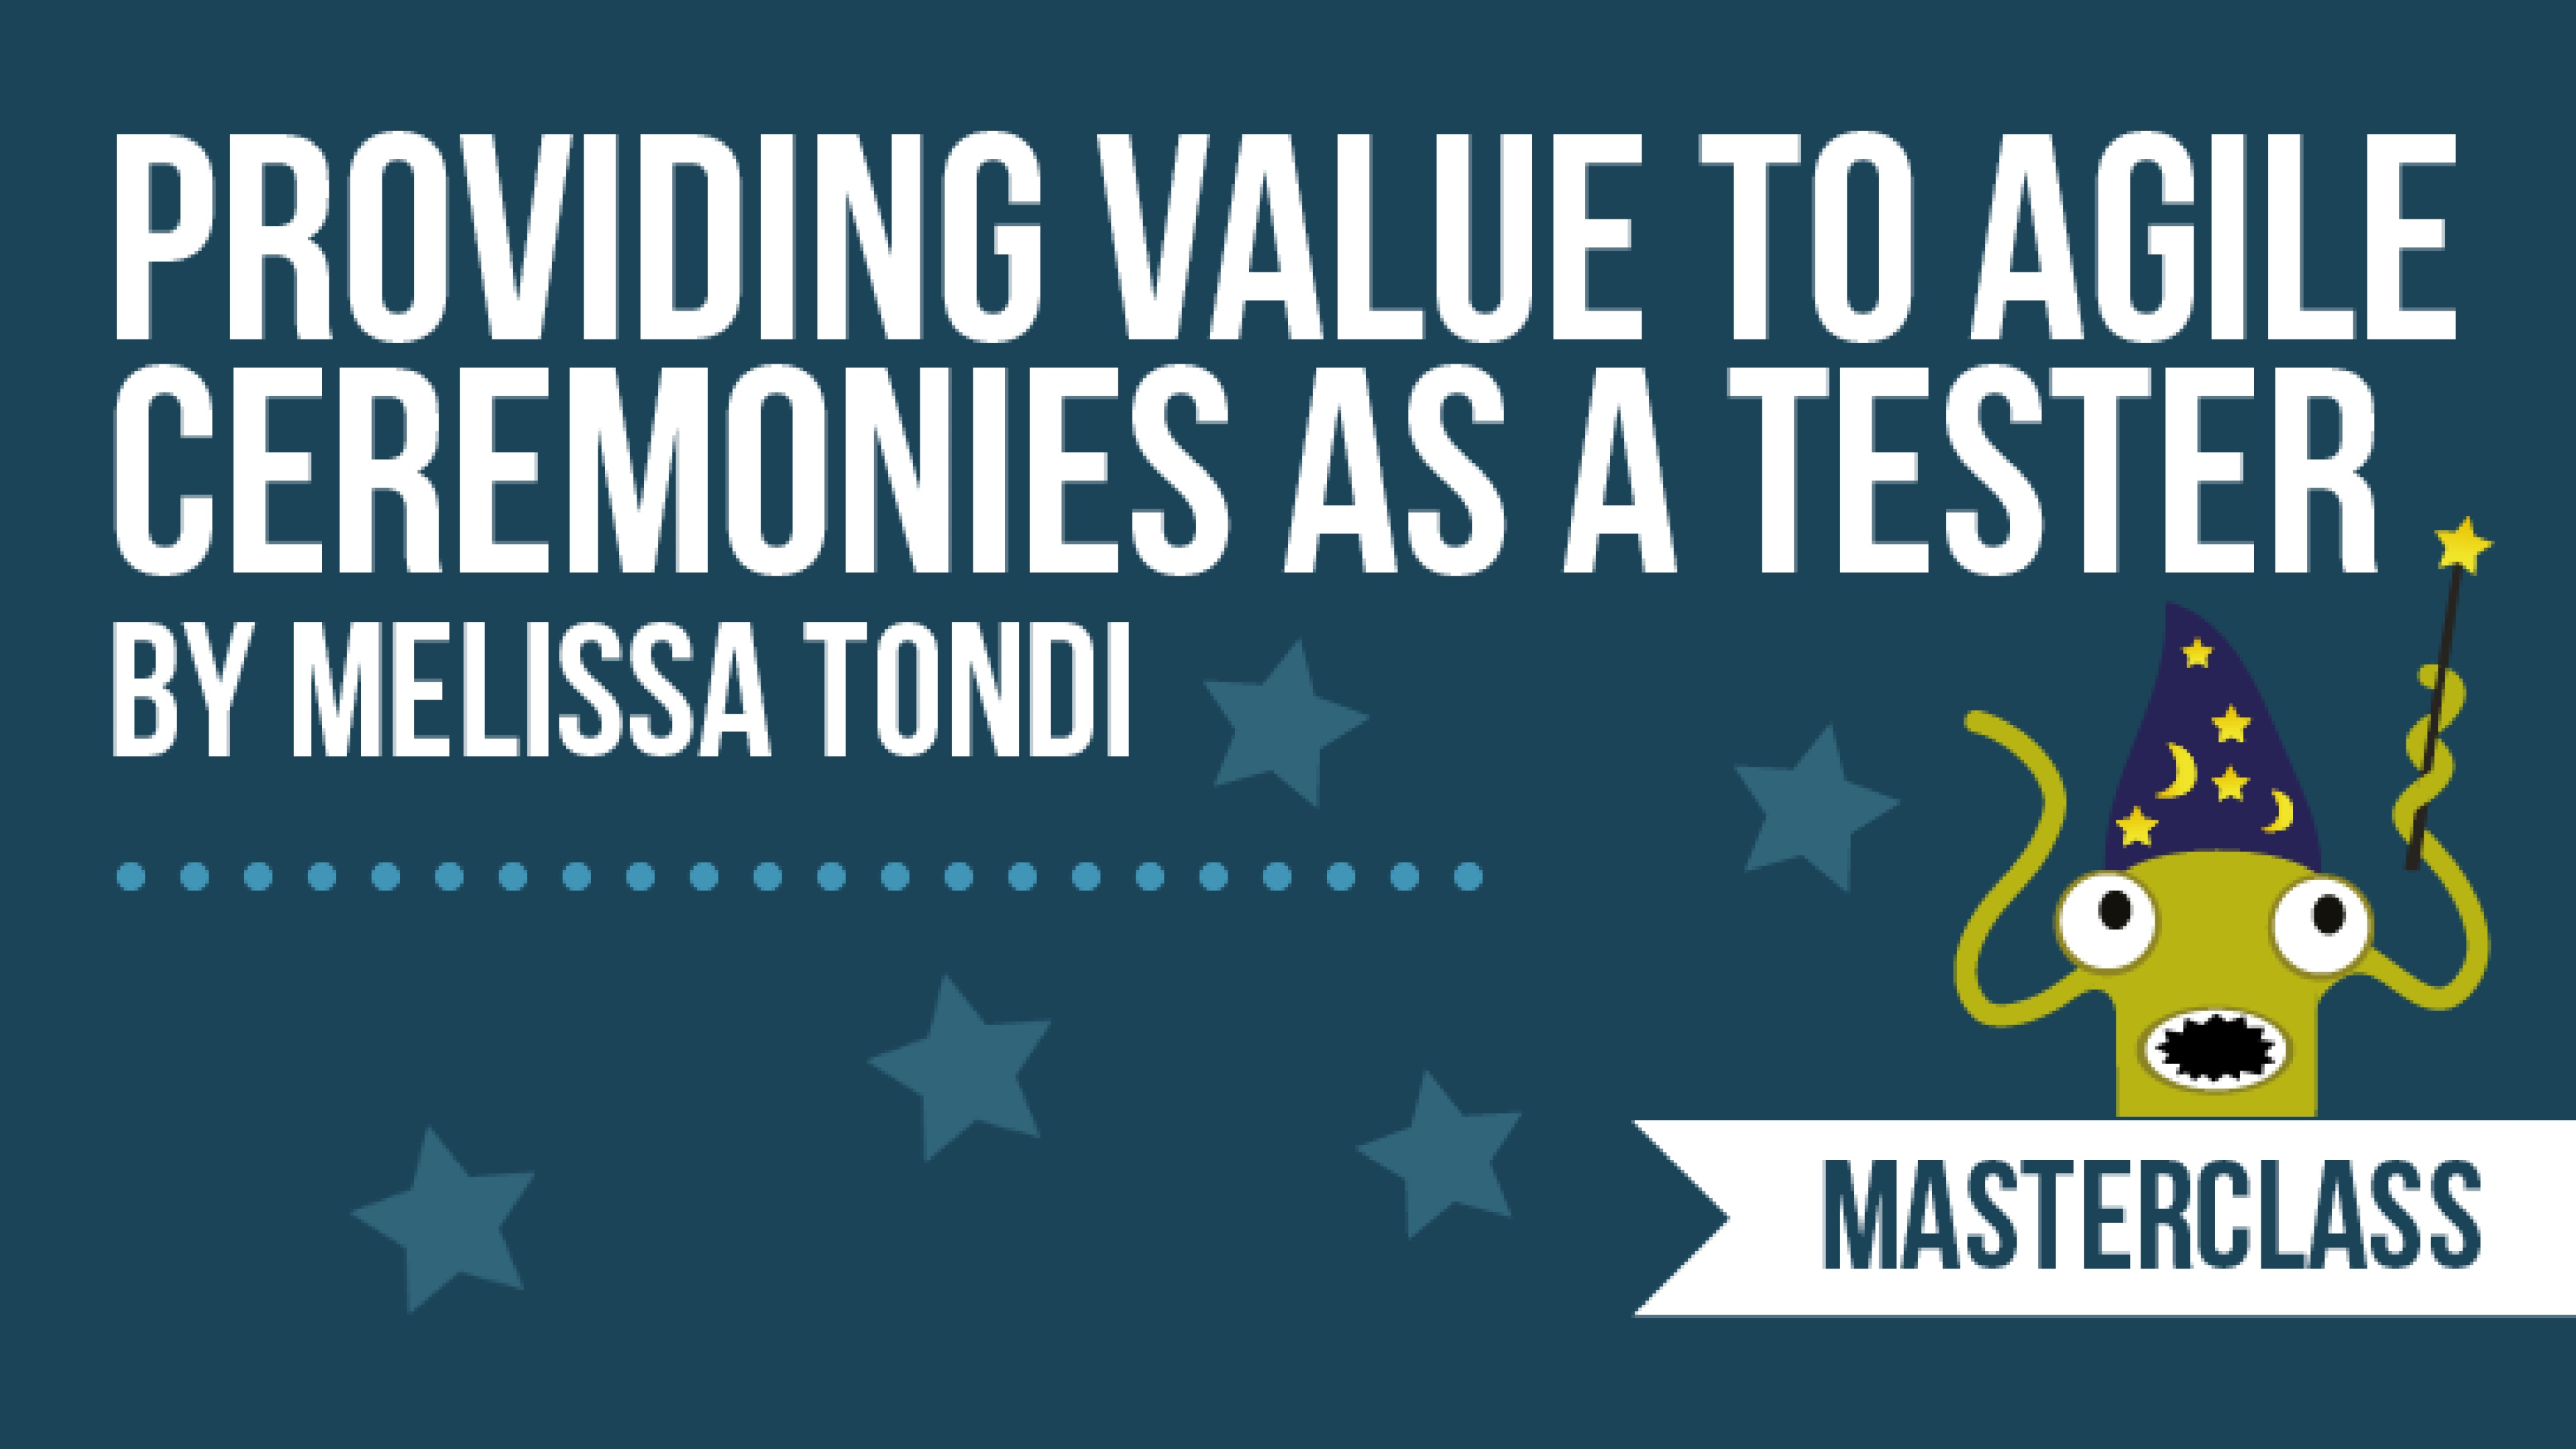 Providing Value to Agile Ceremonies as a Tester with Melissa Tondi